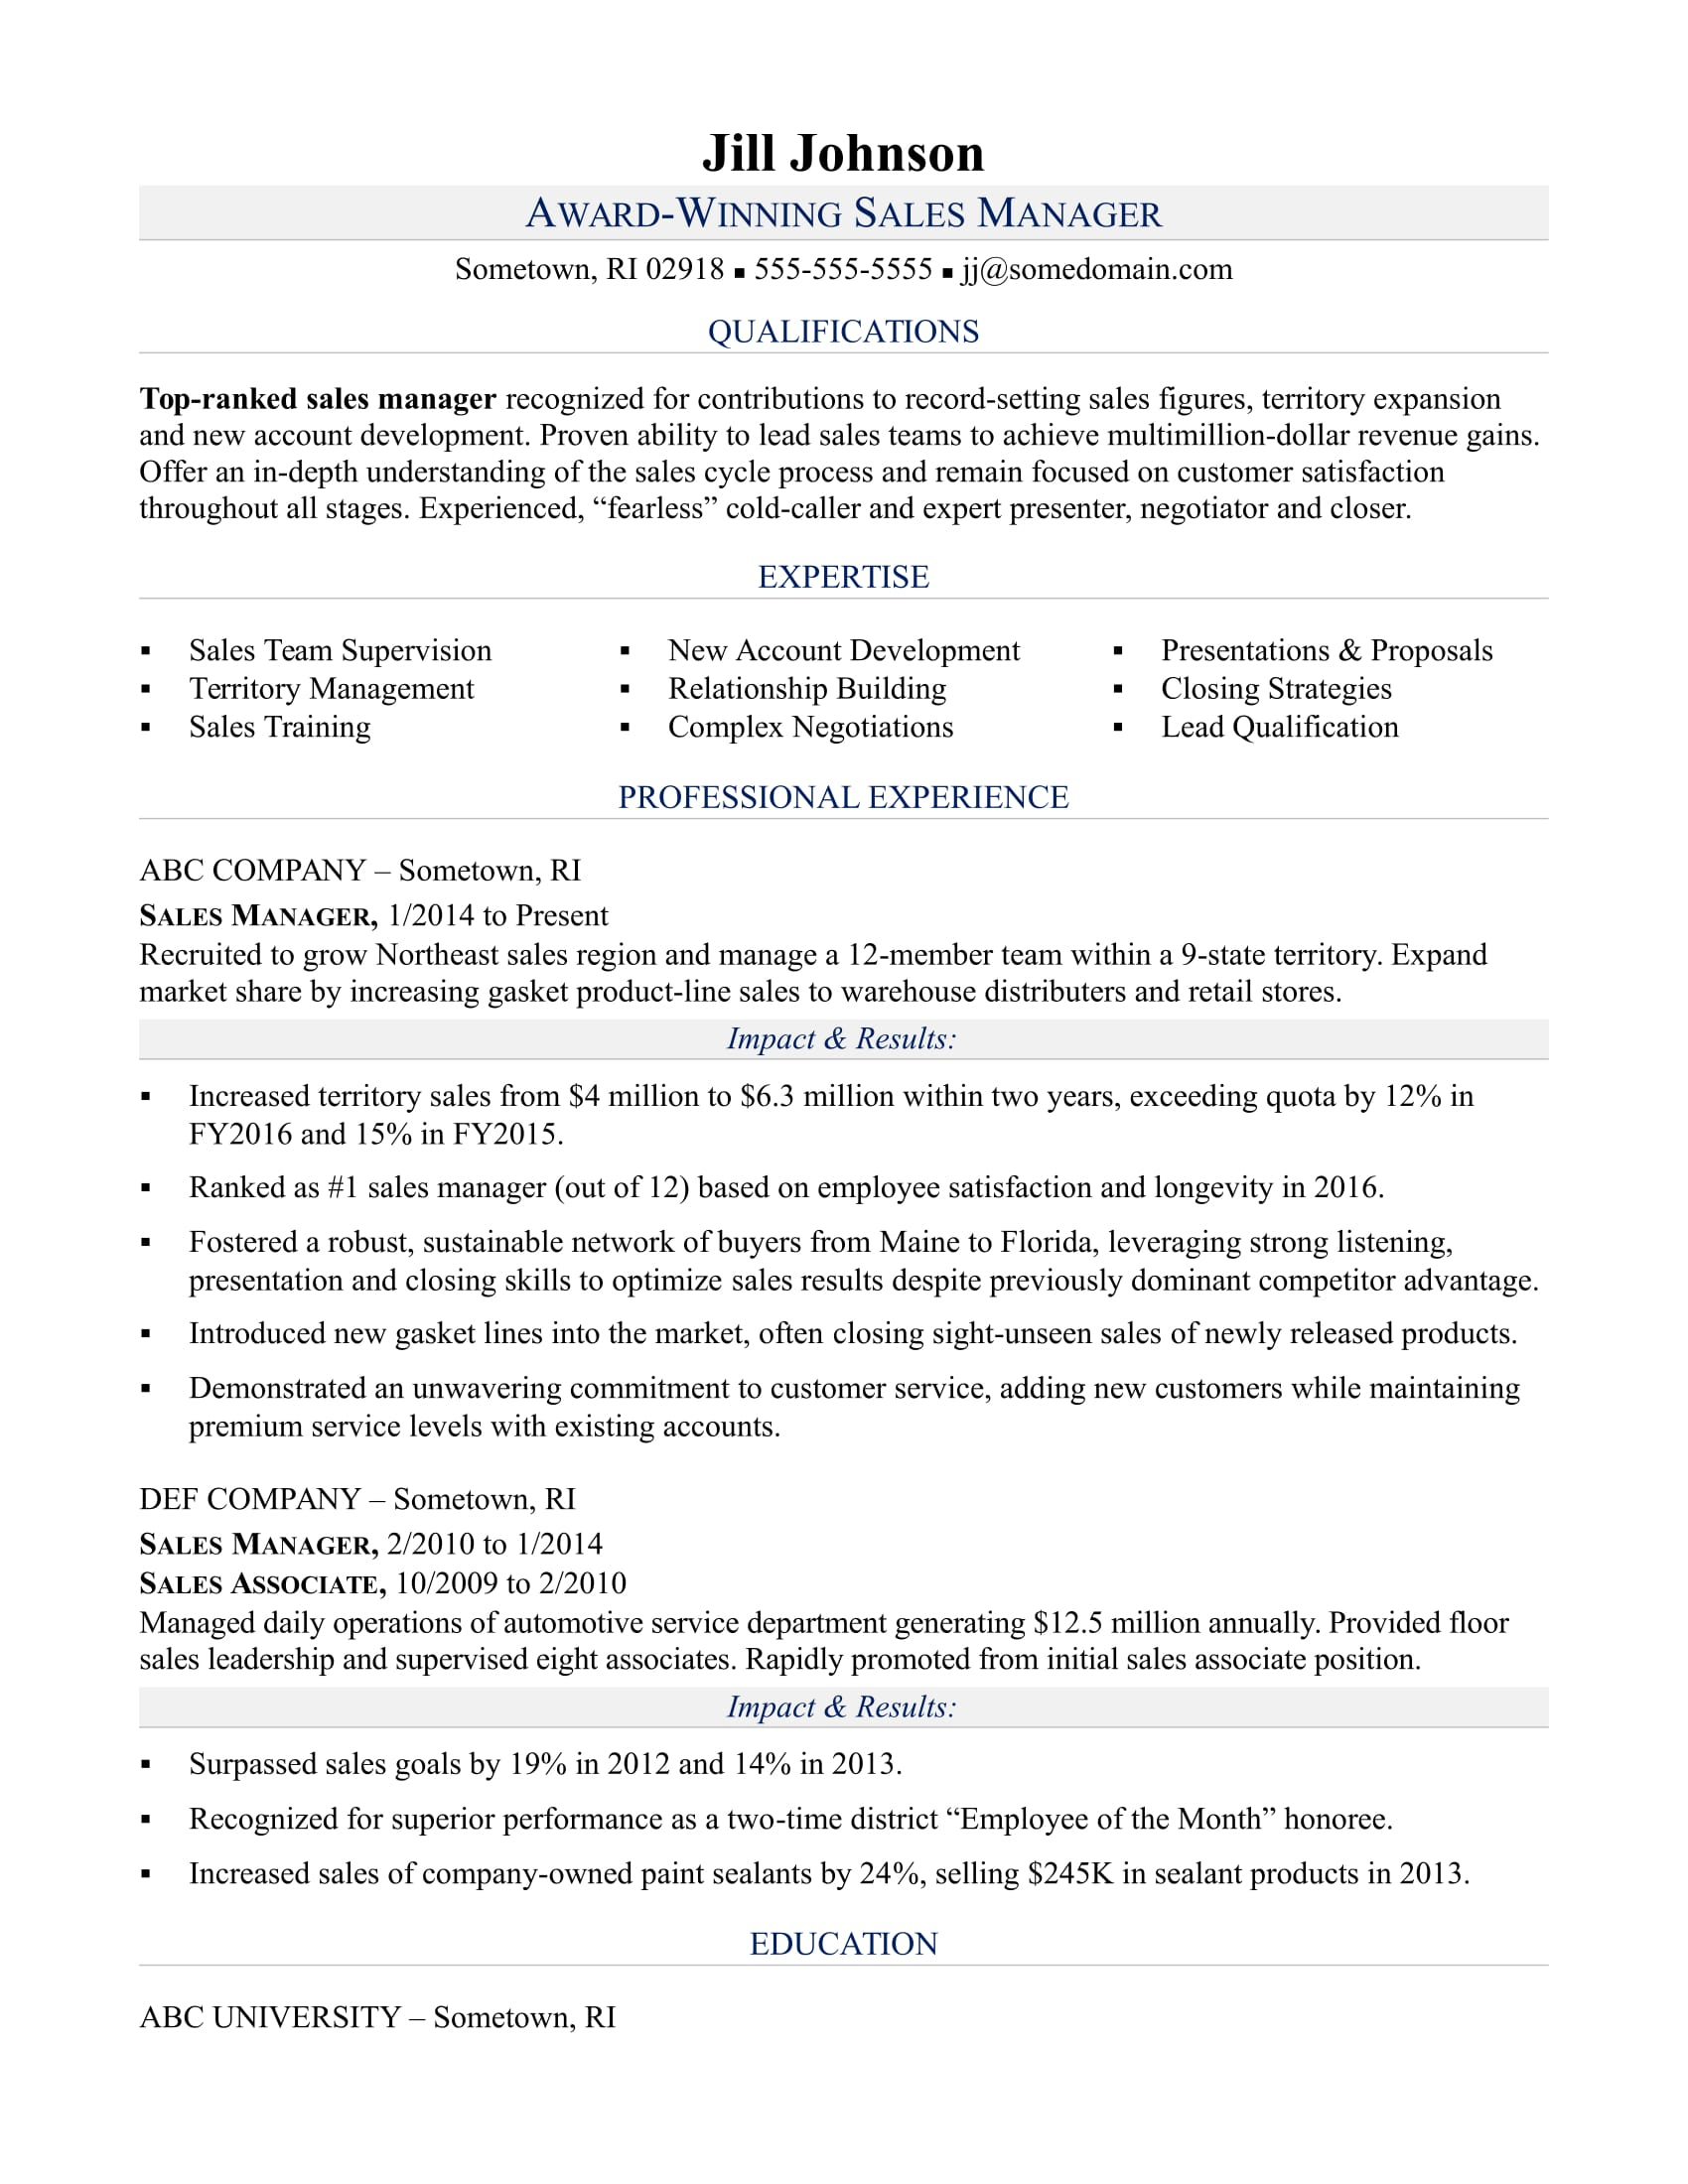 Sales manager resume sample monster sample resume for a sales manager yelopaper Image collections